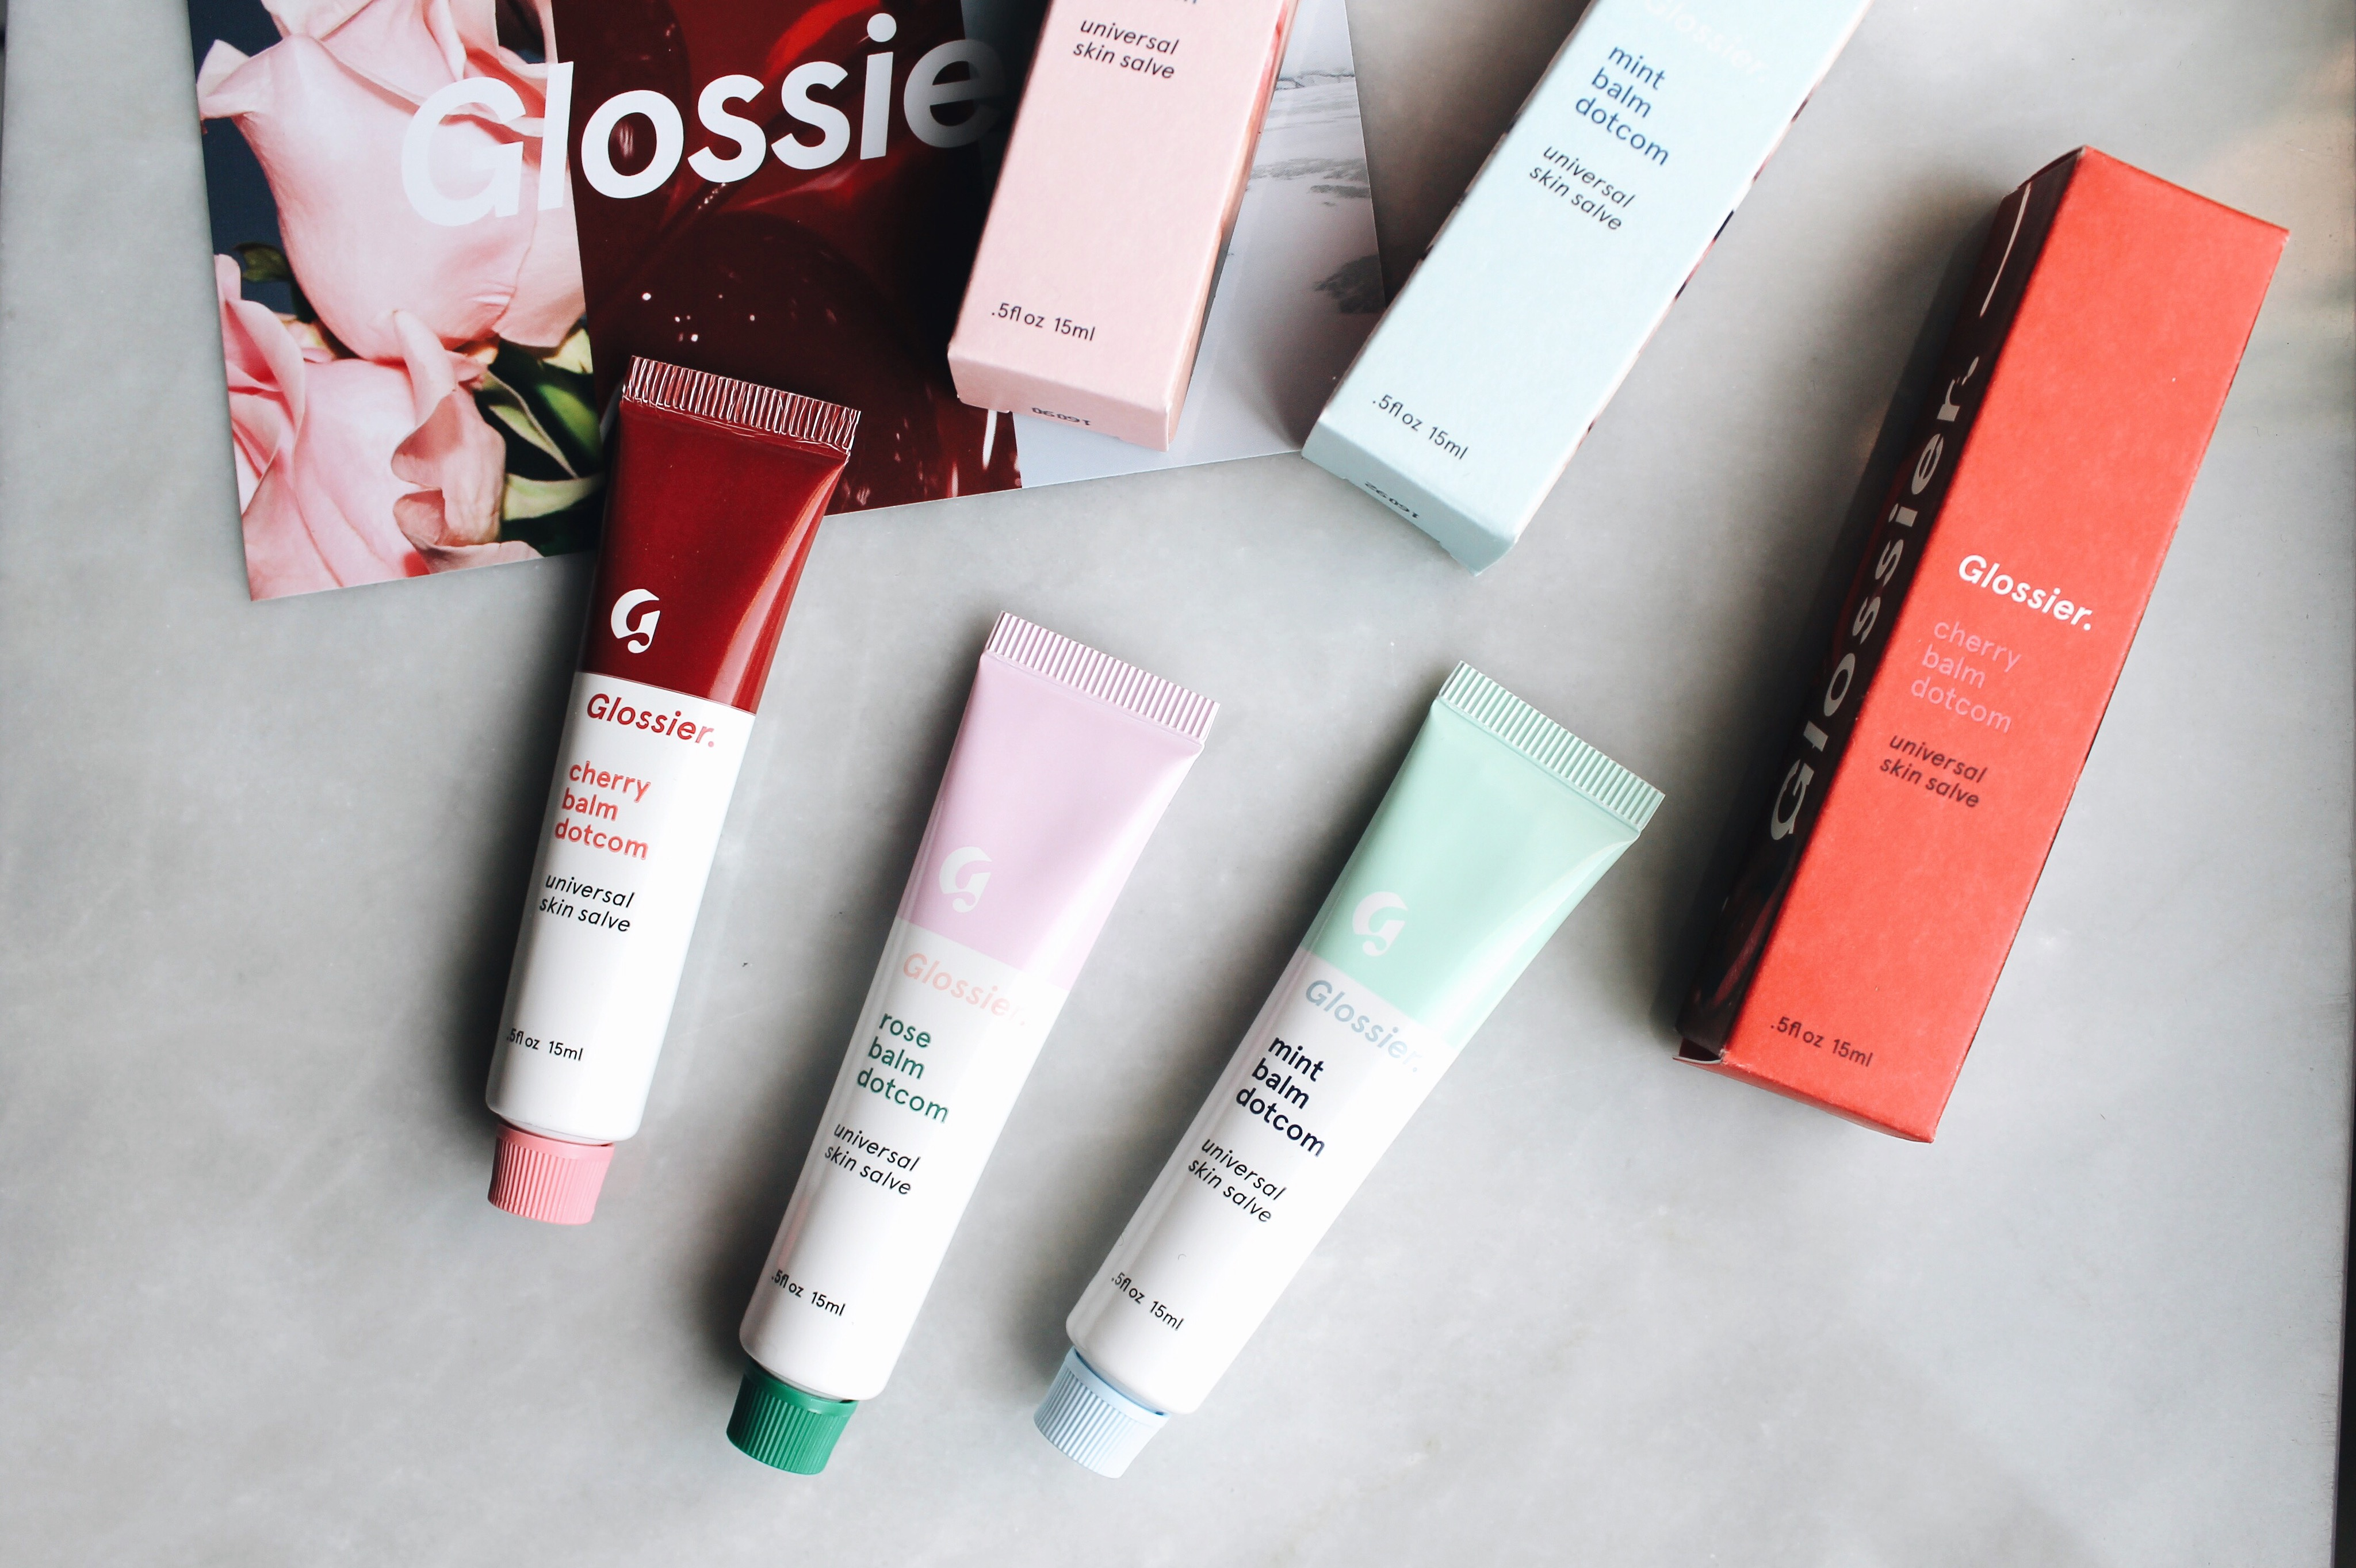 Glossier Flavored Balm DotComs in Cherry, Rose & Mint Review + Swatches, Glossier, Balm DotCom, Glossier Review, Skin Salve, Glossier Balm DotCom Cherry, Balm DotCom Mint, Balm DotCom Rose, Balm DotCom Coconut